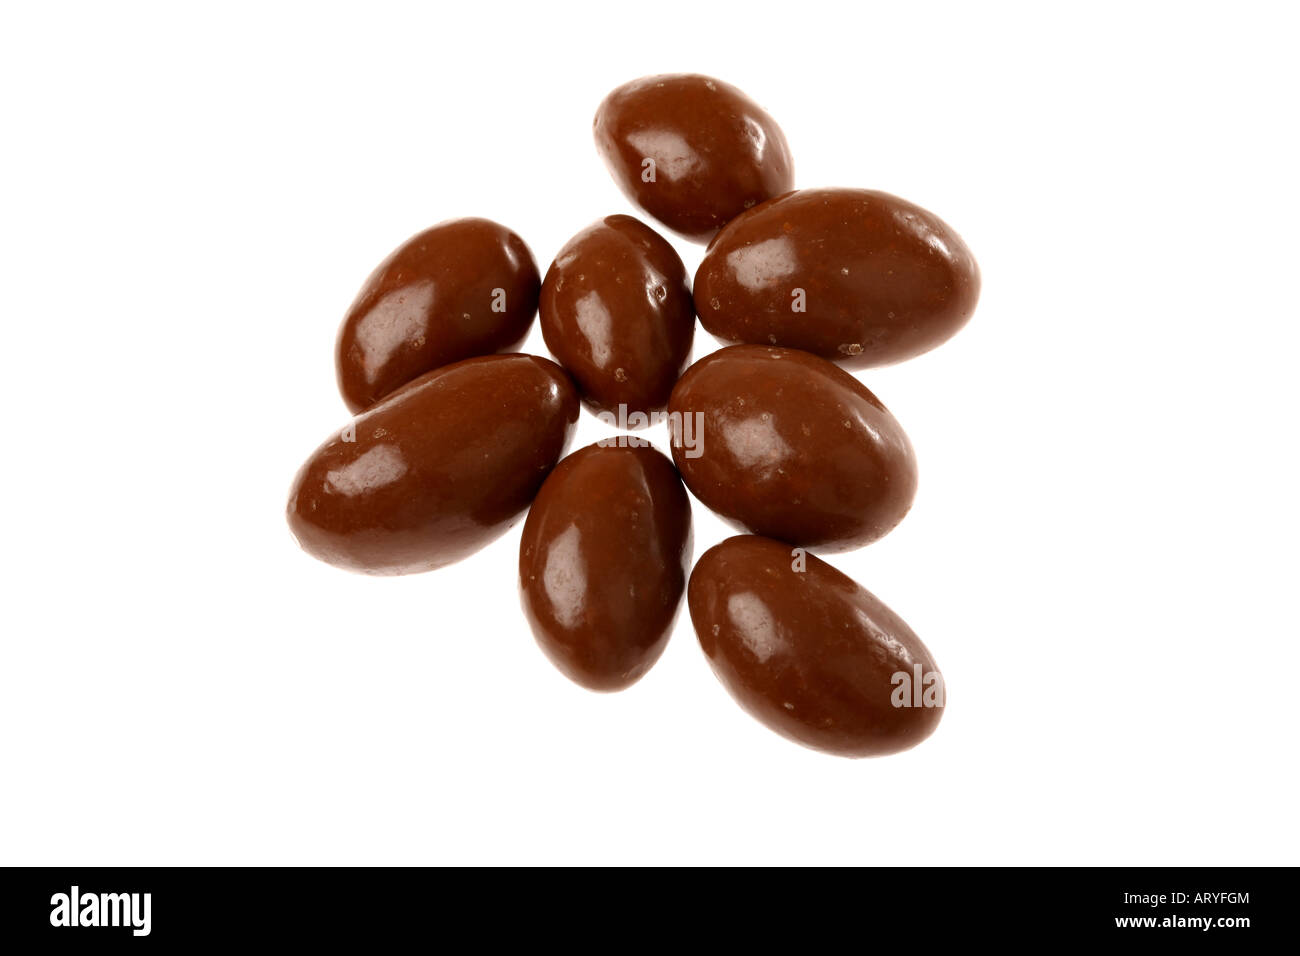 Chocolate Covered Brazil Nuts Stock Photo